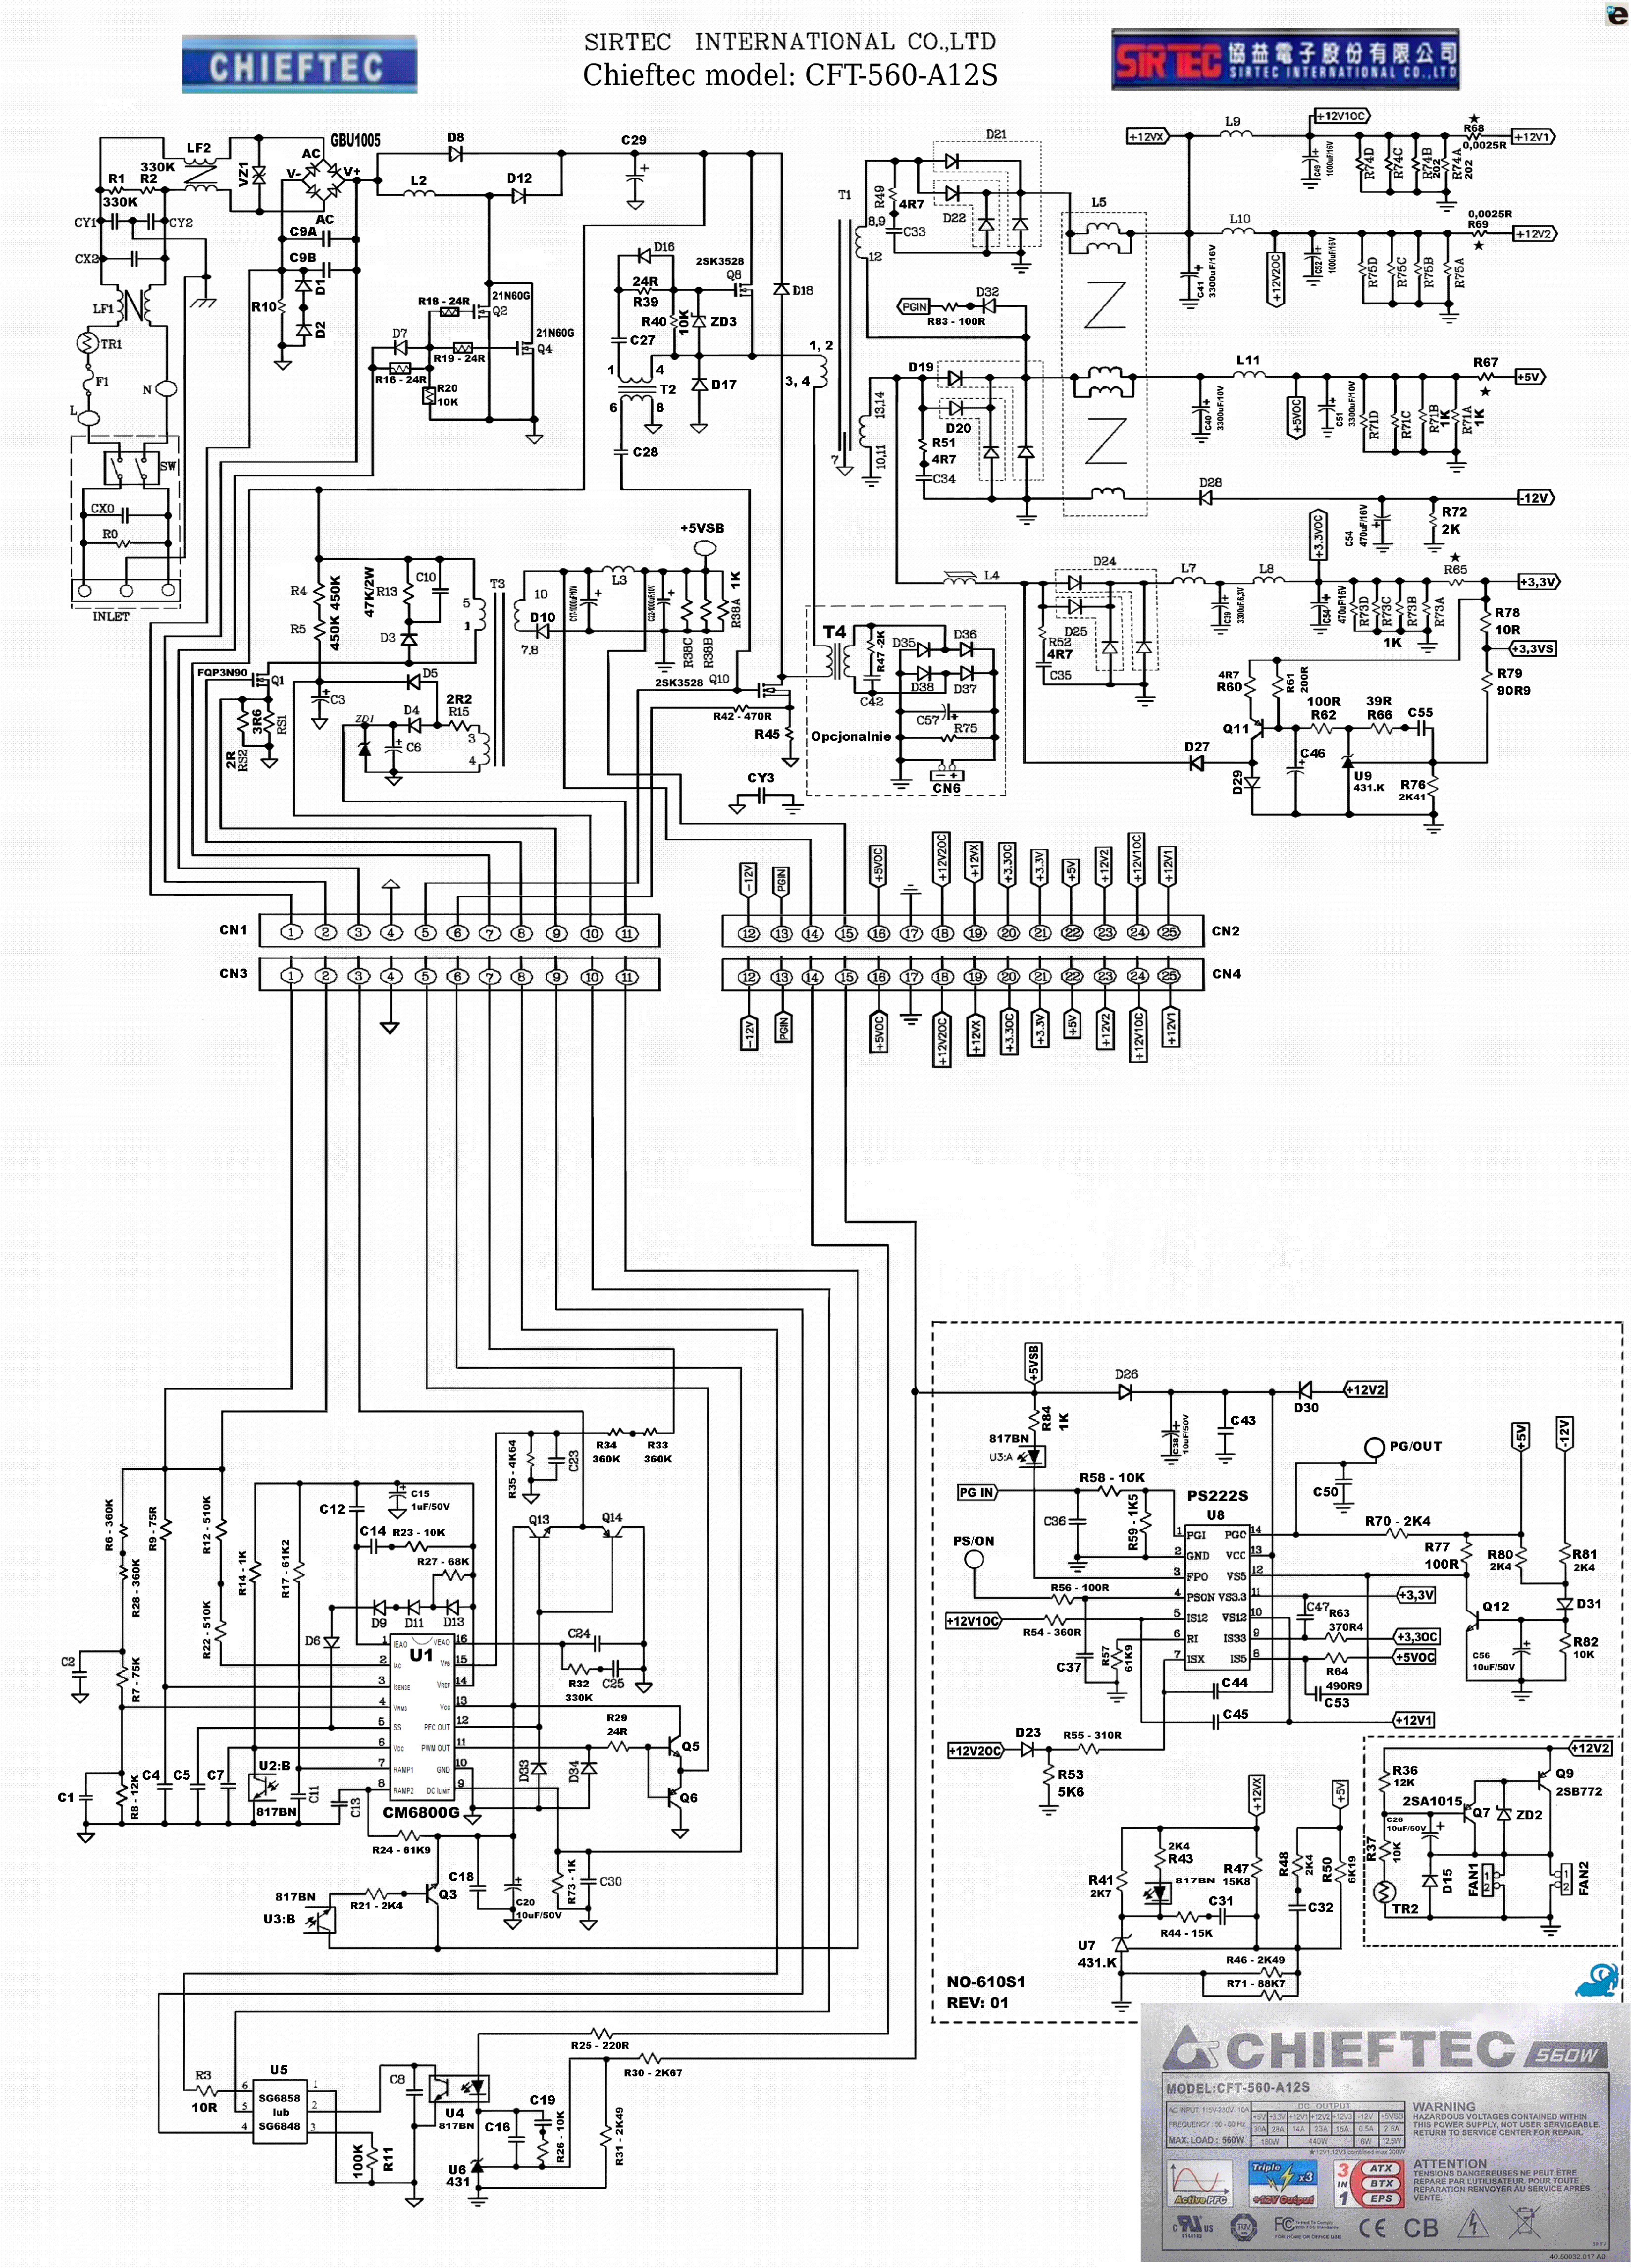 Sg3525 Inverter Circuit Output Voltage Correction together with Midnite Solar Lightning Arrestor also Solar Panel Charge Controller Circuit Pdf Download together with 30w Simple Inverter Using 6 Transistors as well How Inverters Work. on power inverter circuit diagram